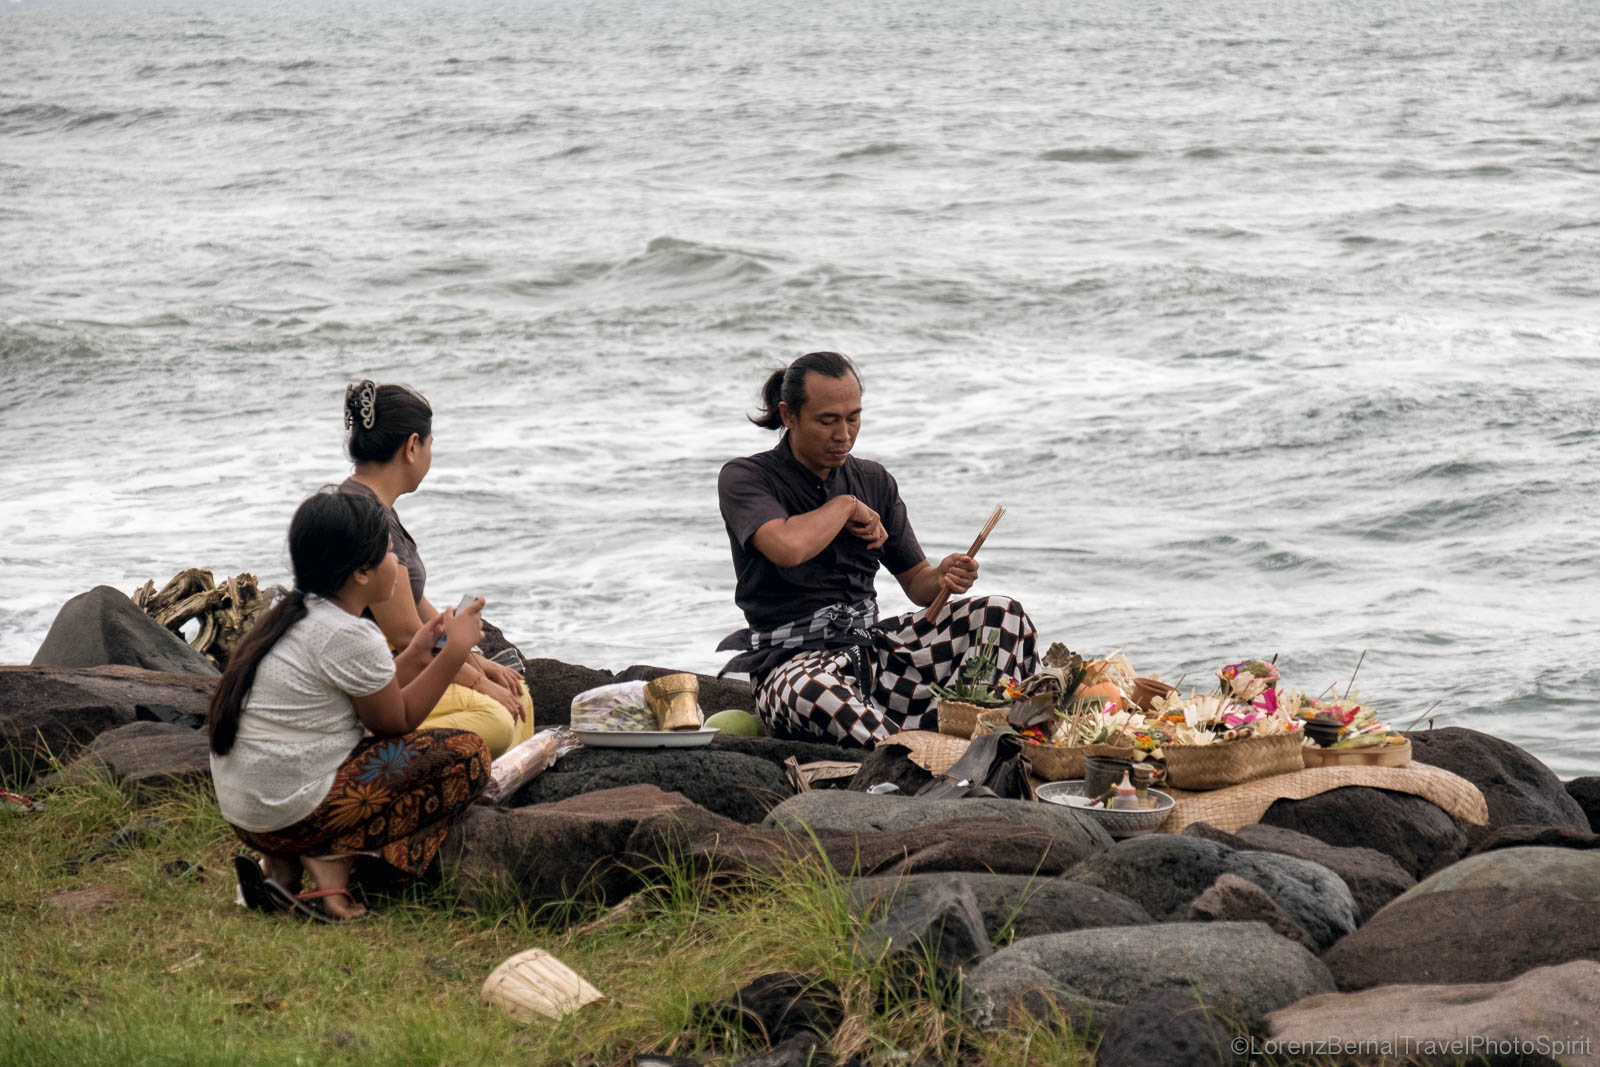 Ceremony of offerings on the Seashore in Bali, Indonesia